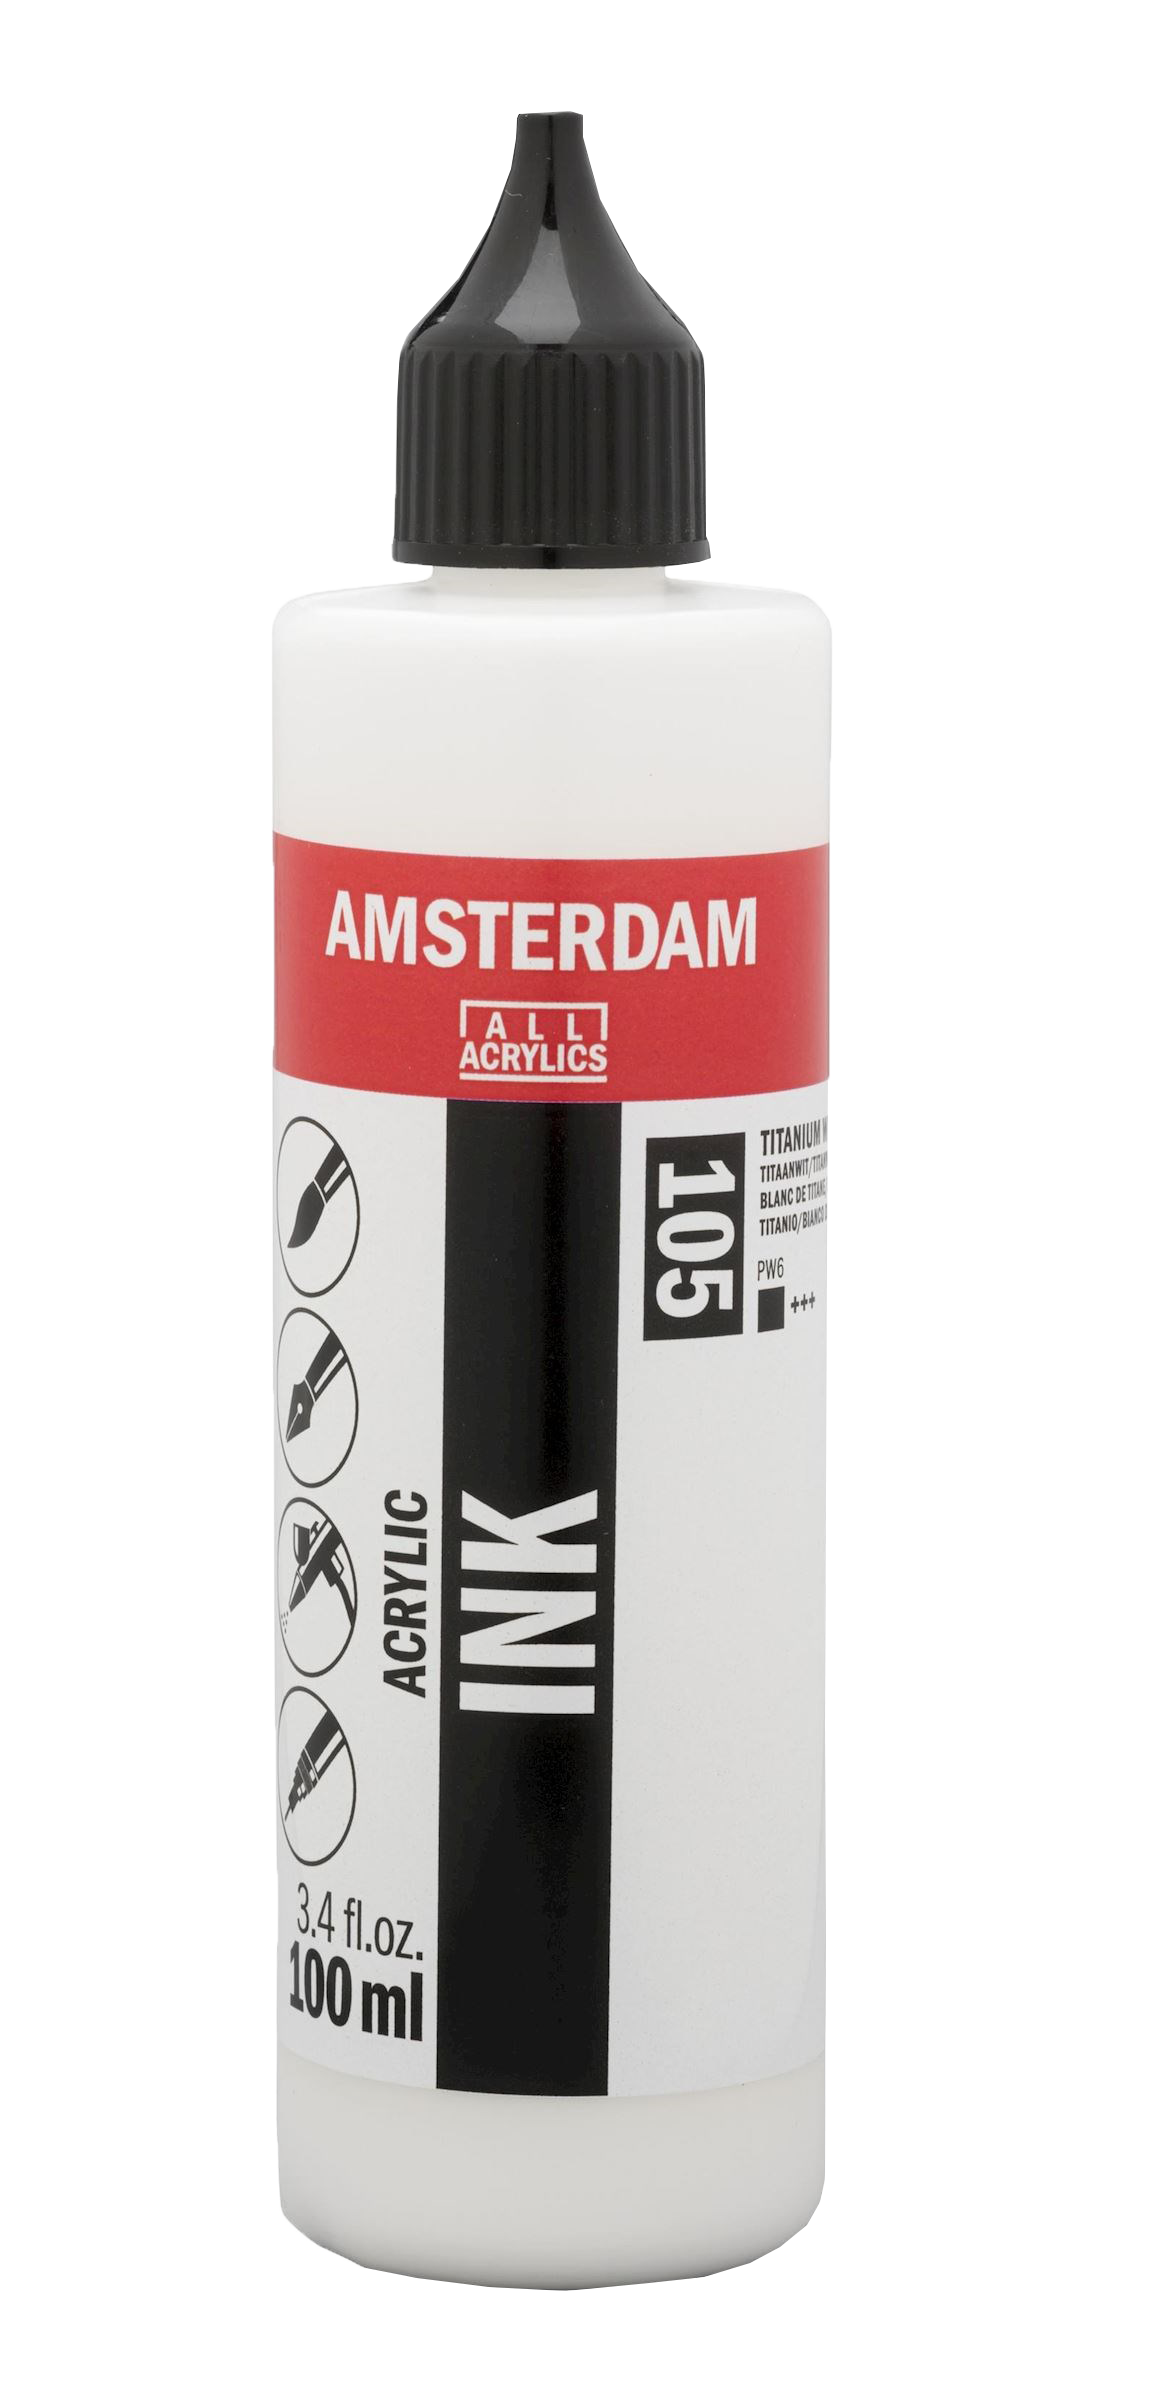 Amsterdam akrylový atrament v tube 100ml